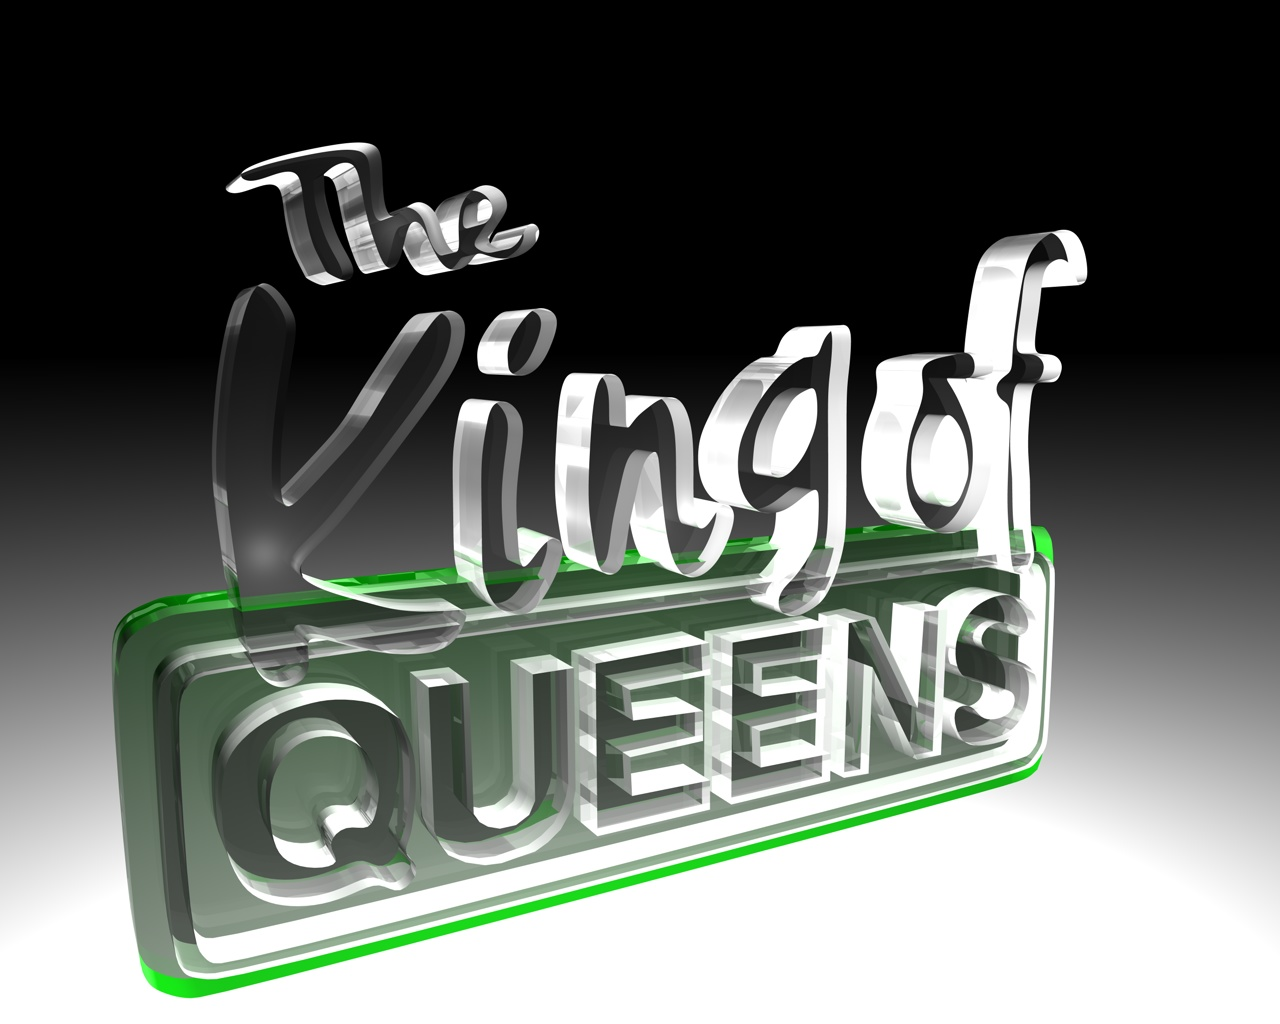 king of queens arthur spence casino